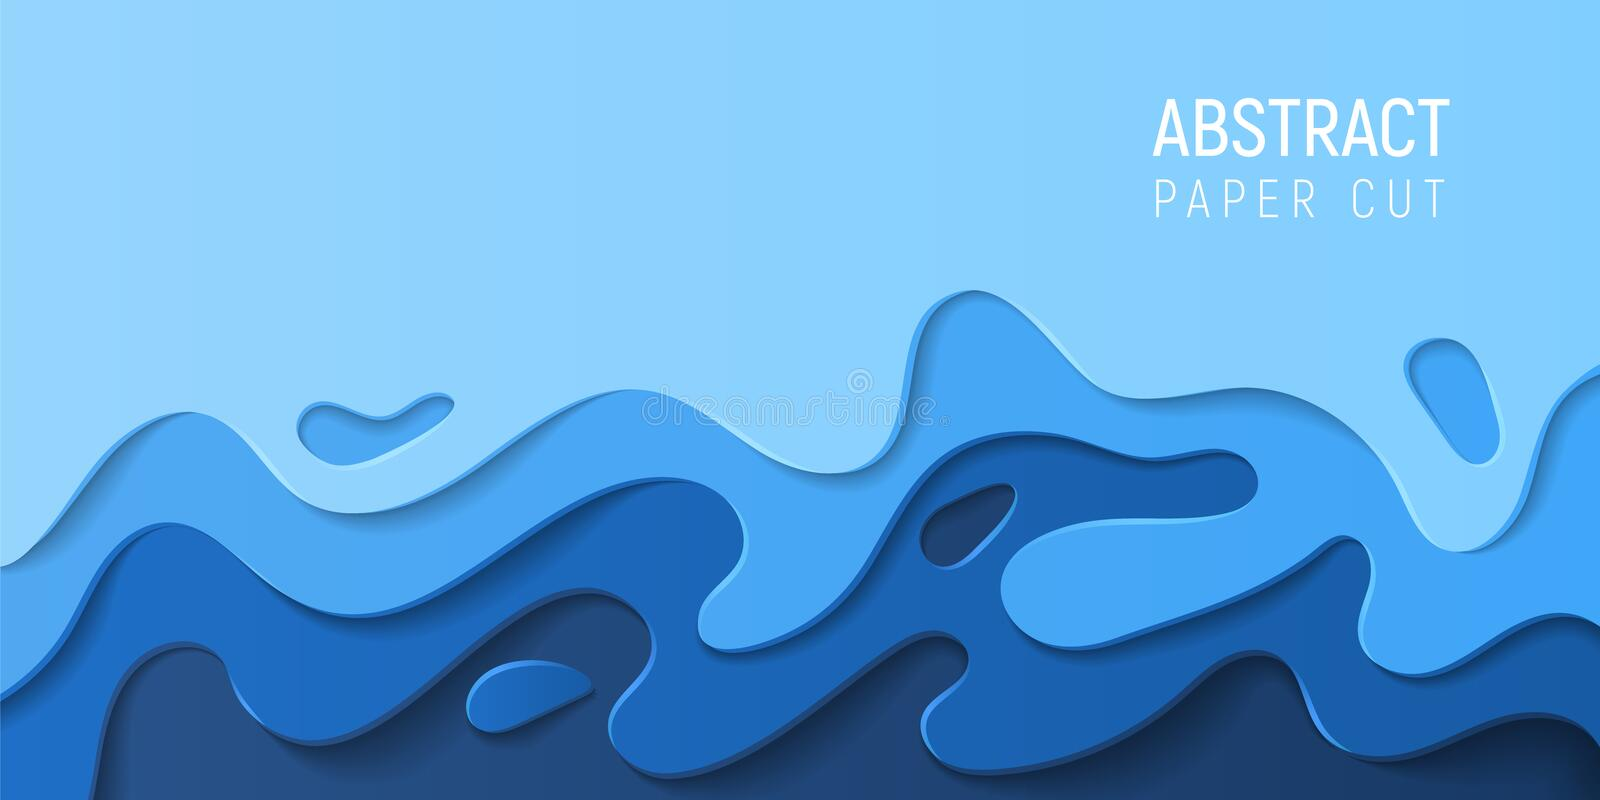 Paper cut water abstract background. Banner with 3D abstract paper cut blue waves. Eco friendly design. Vector vector illustration